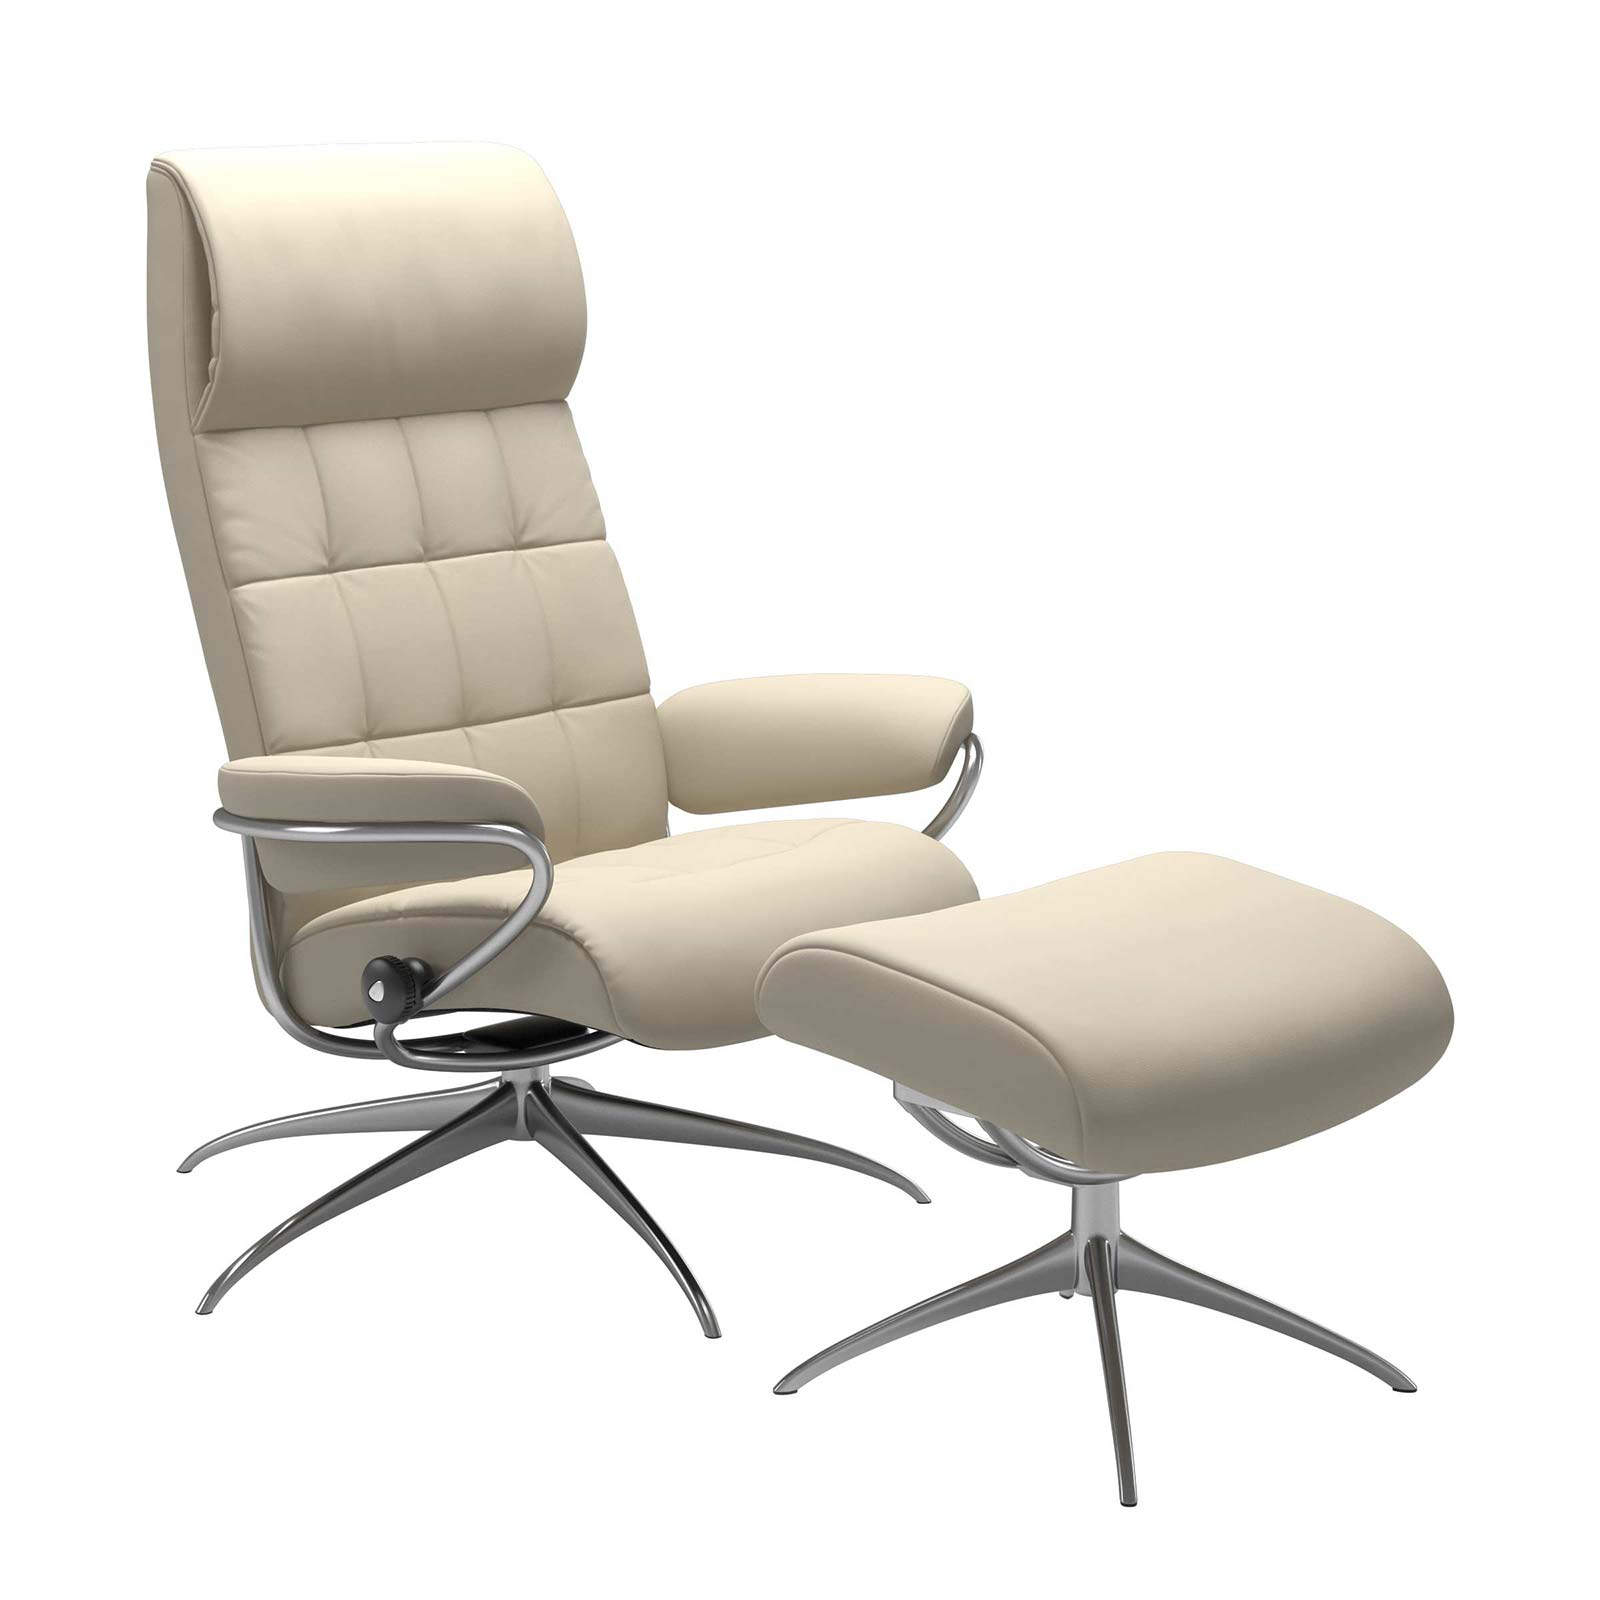 Stressless London Sessel Mit Hoher Lehne Lederfarbe Cream